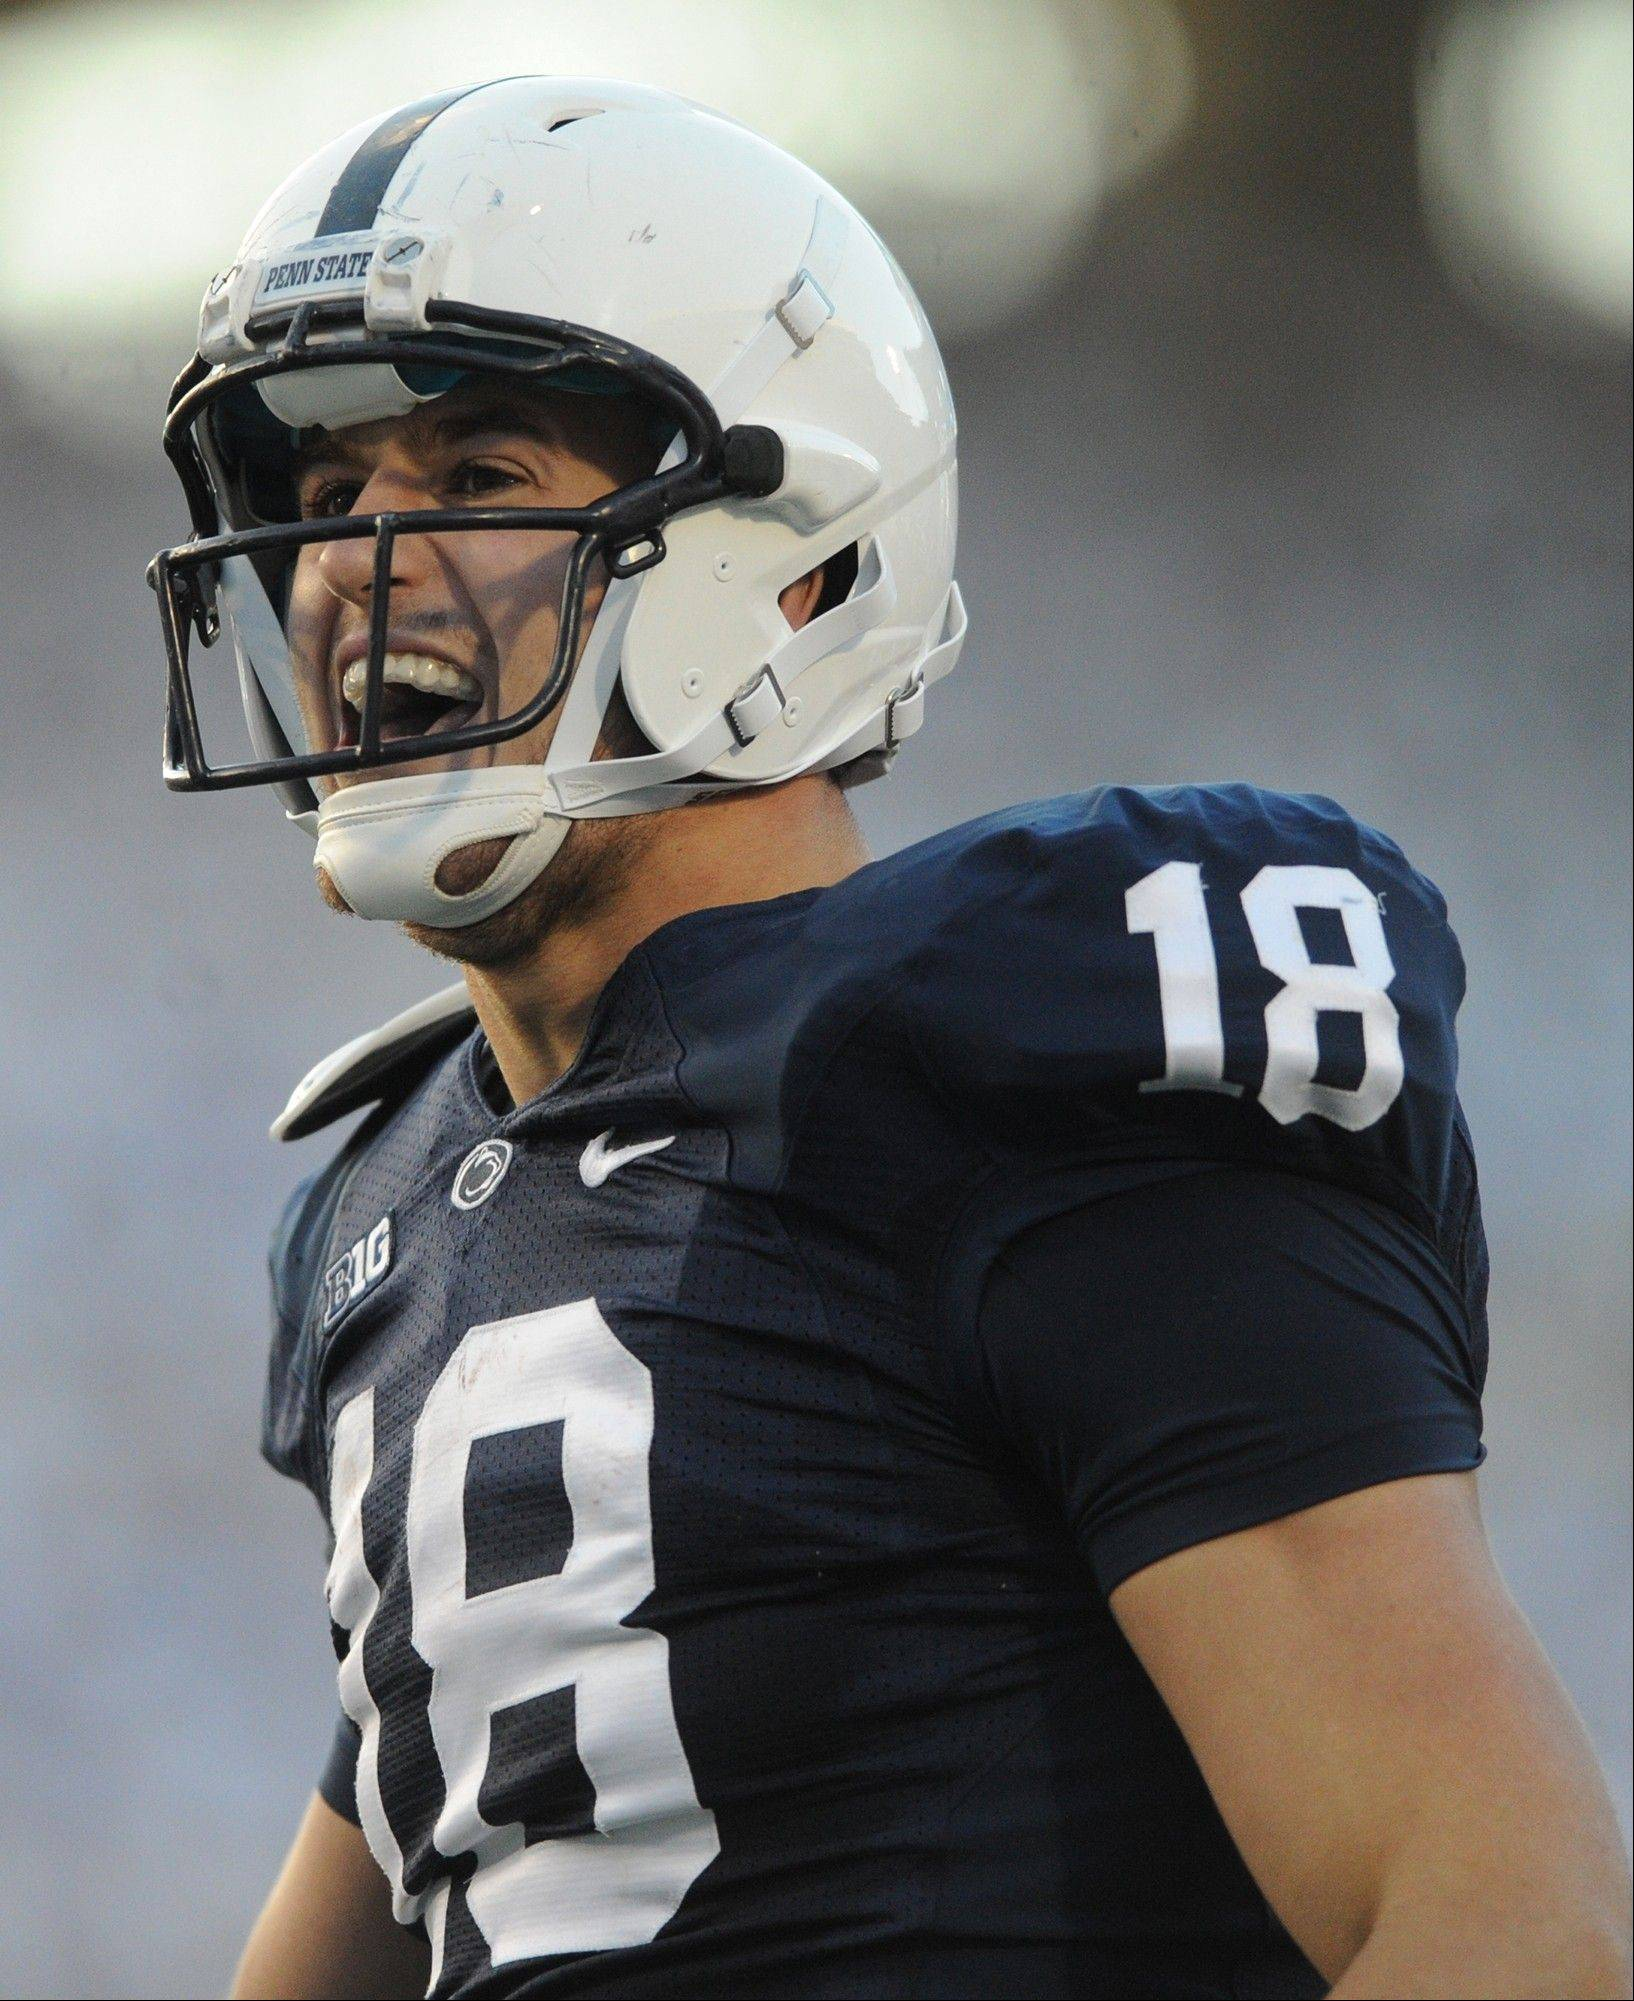 Penn State motivated after huge win over Michigan